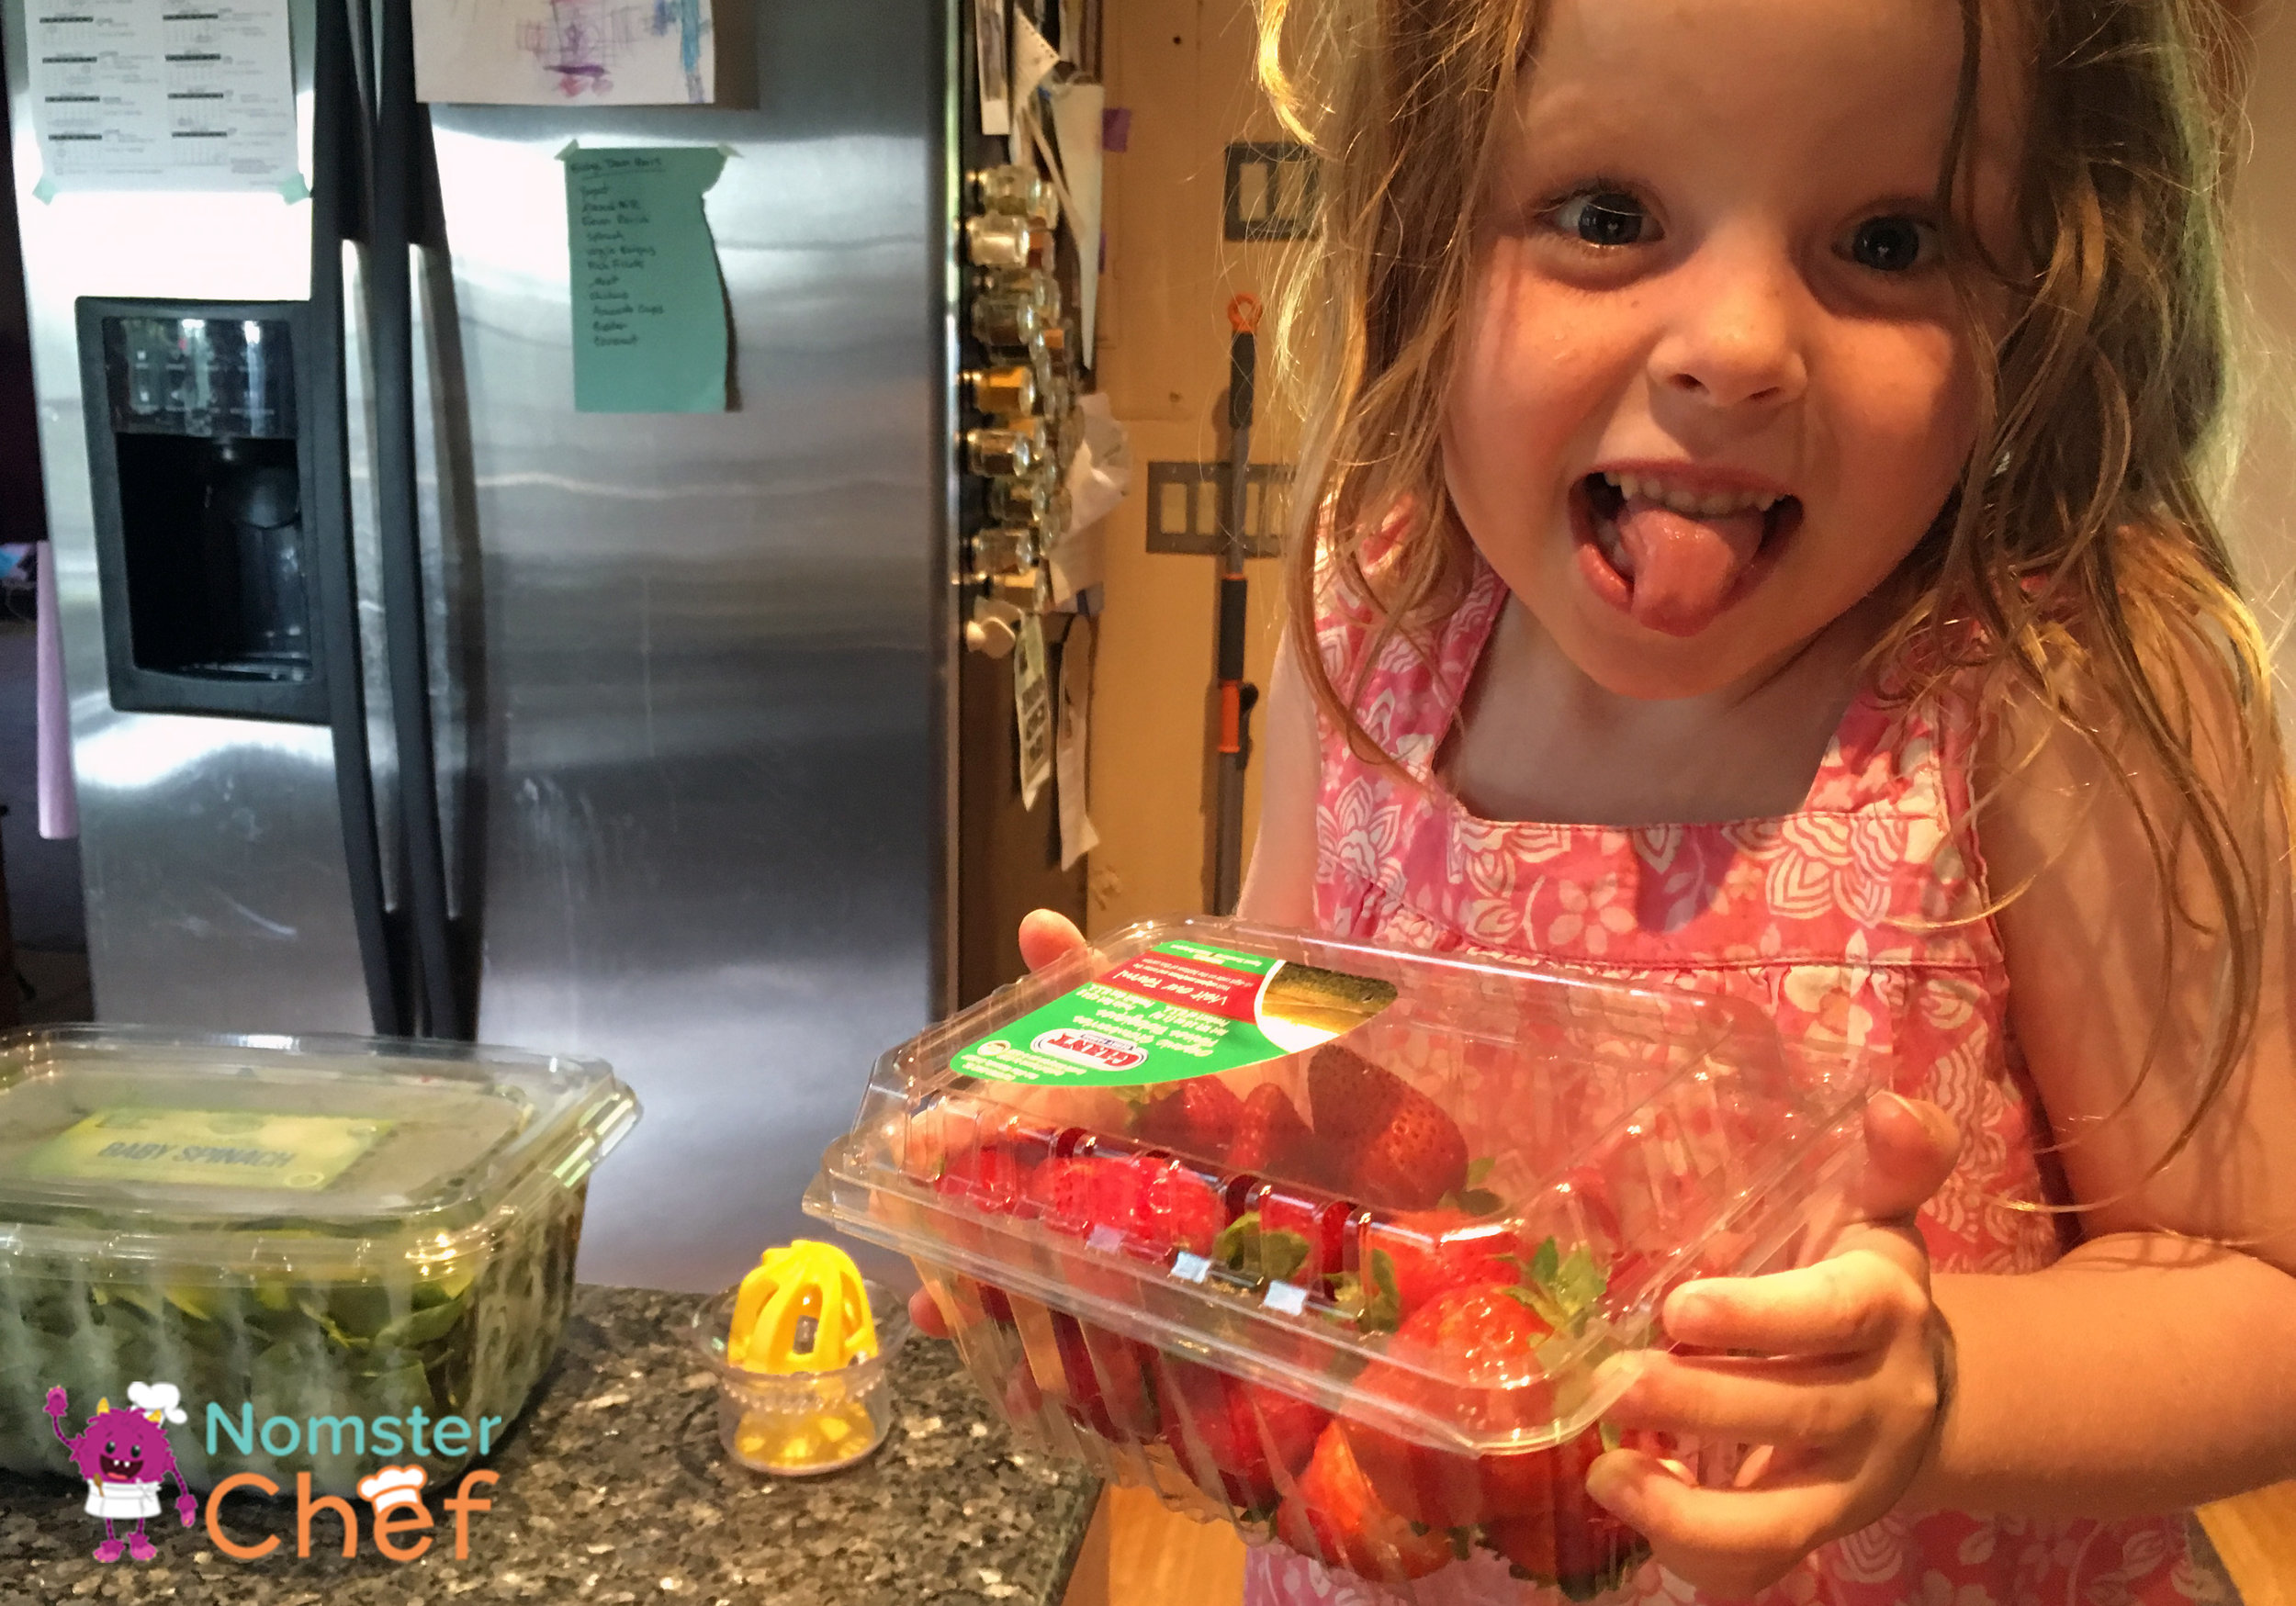 Then she got crazy and added some strawberries.